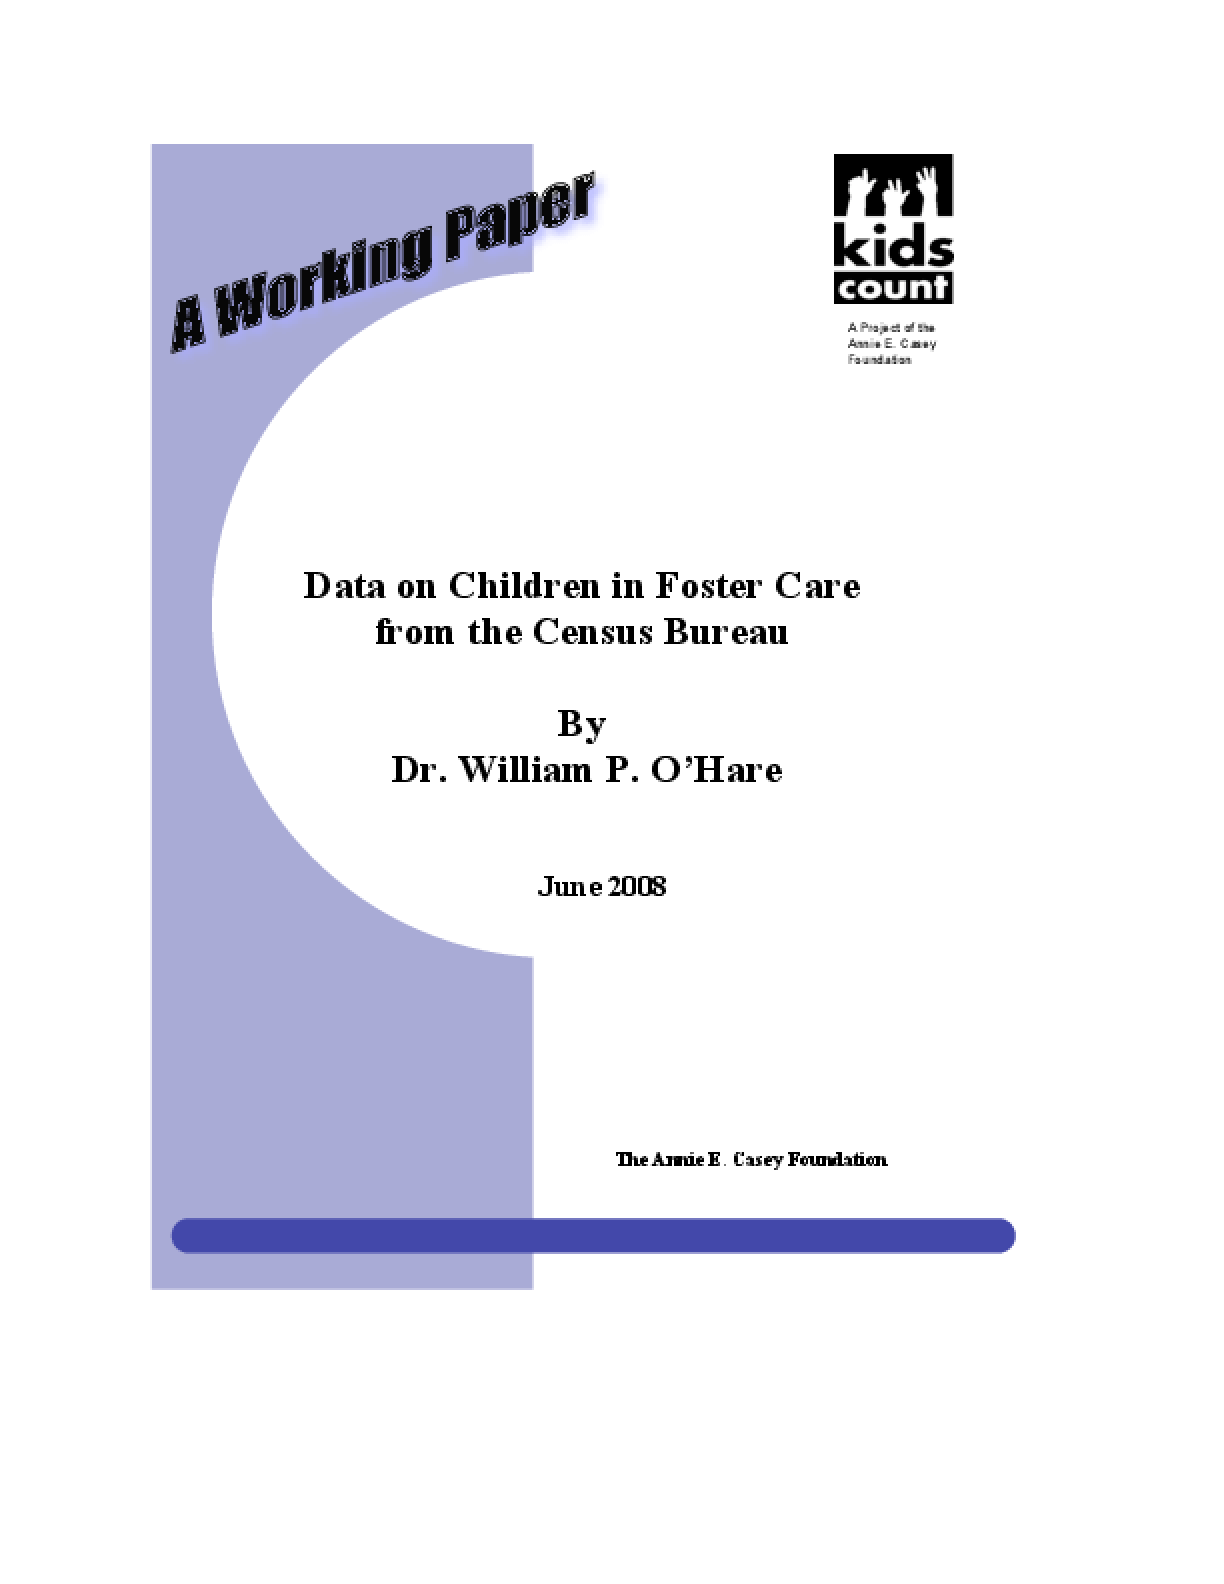 Data on Children in Foster Care From the Census Bureau